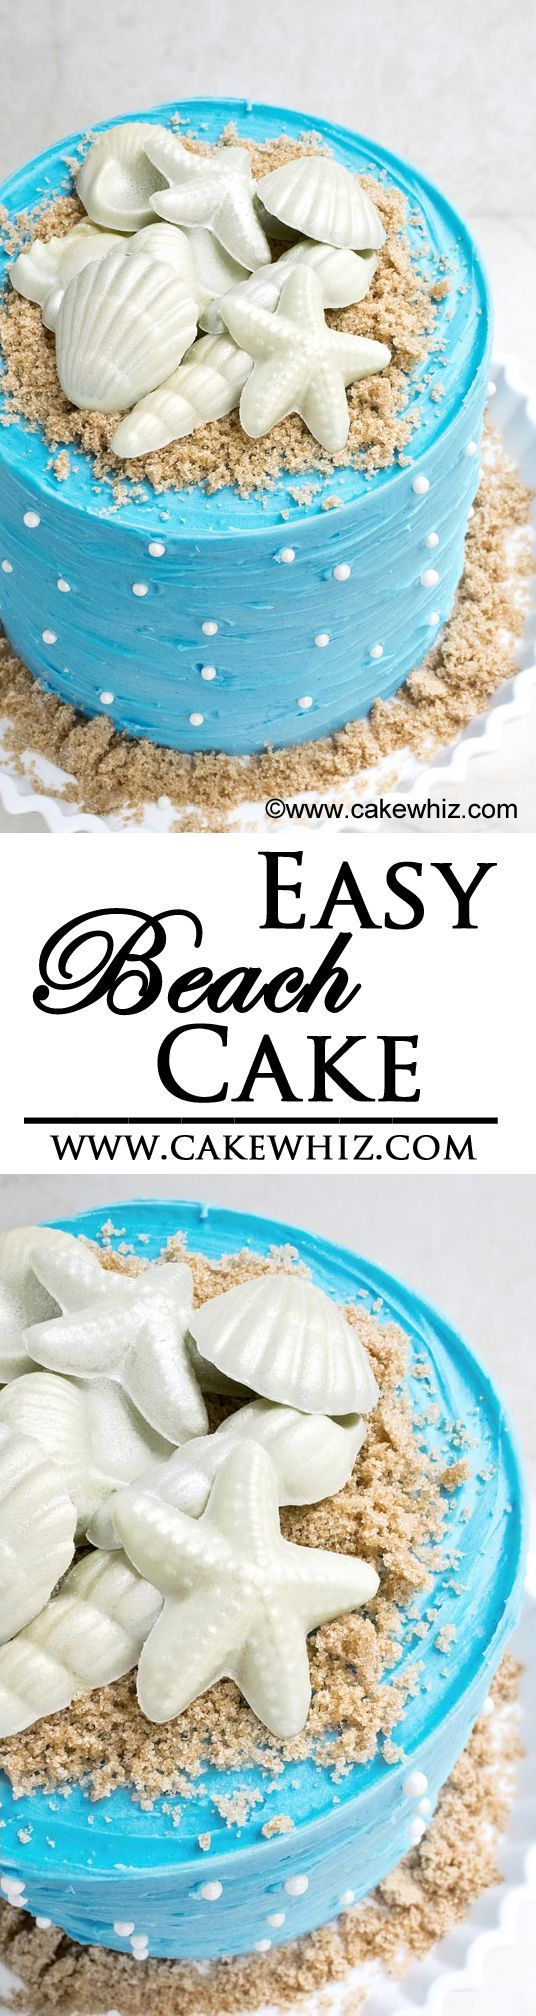 This EASY BEACH CAKE is perfect for Summer parties Its decorated